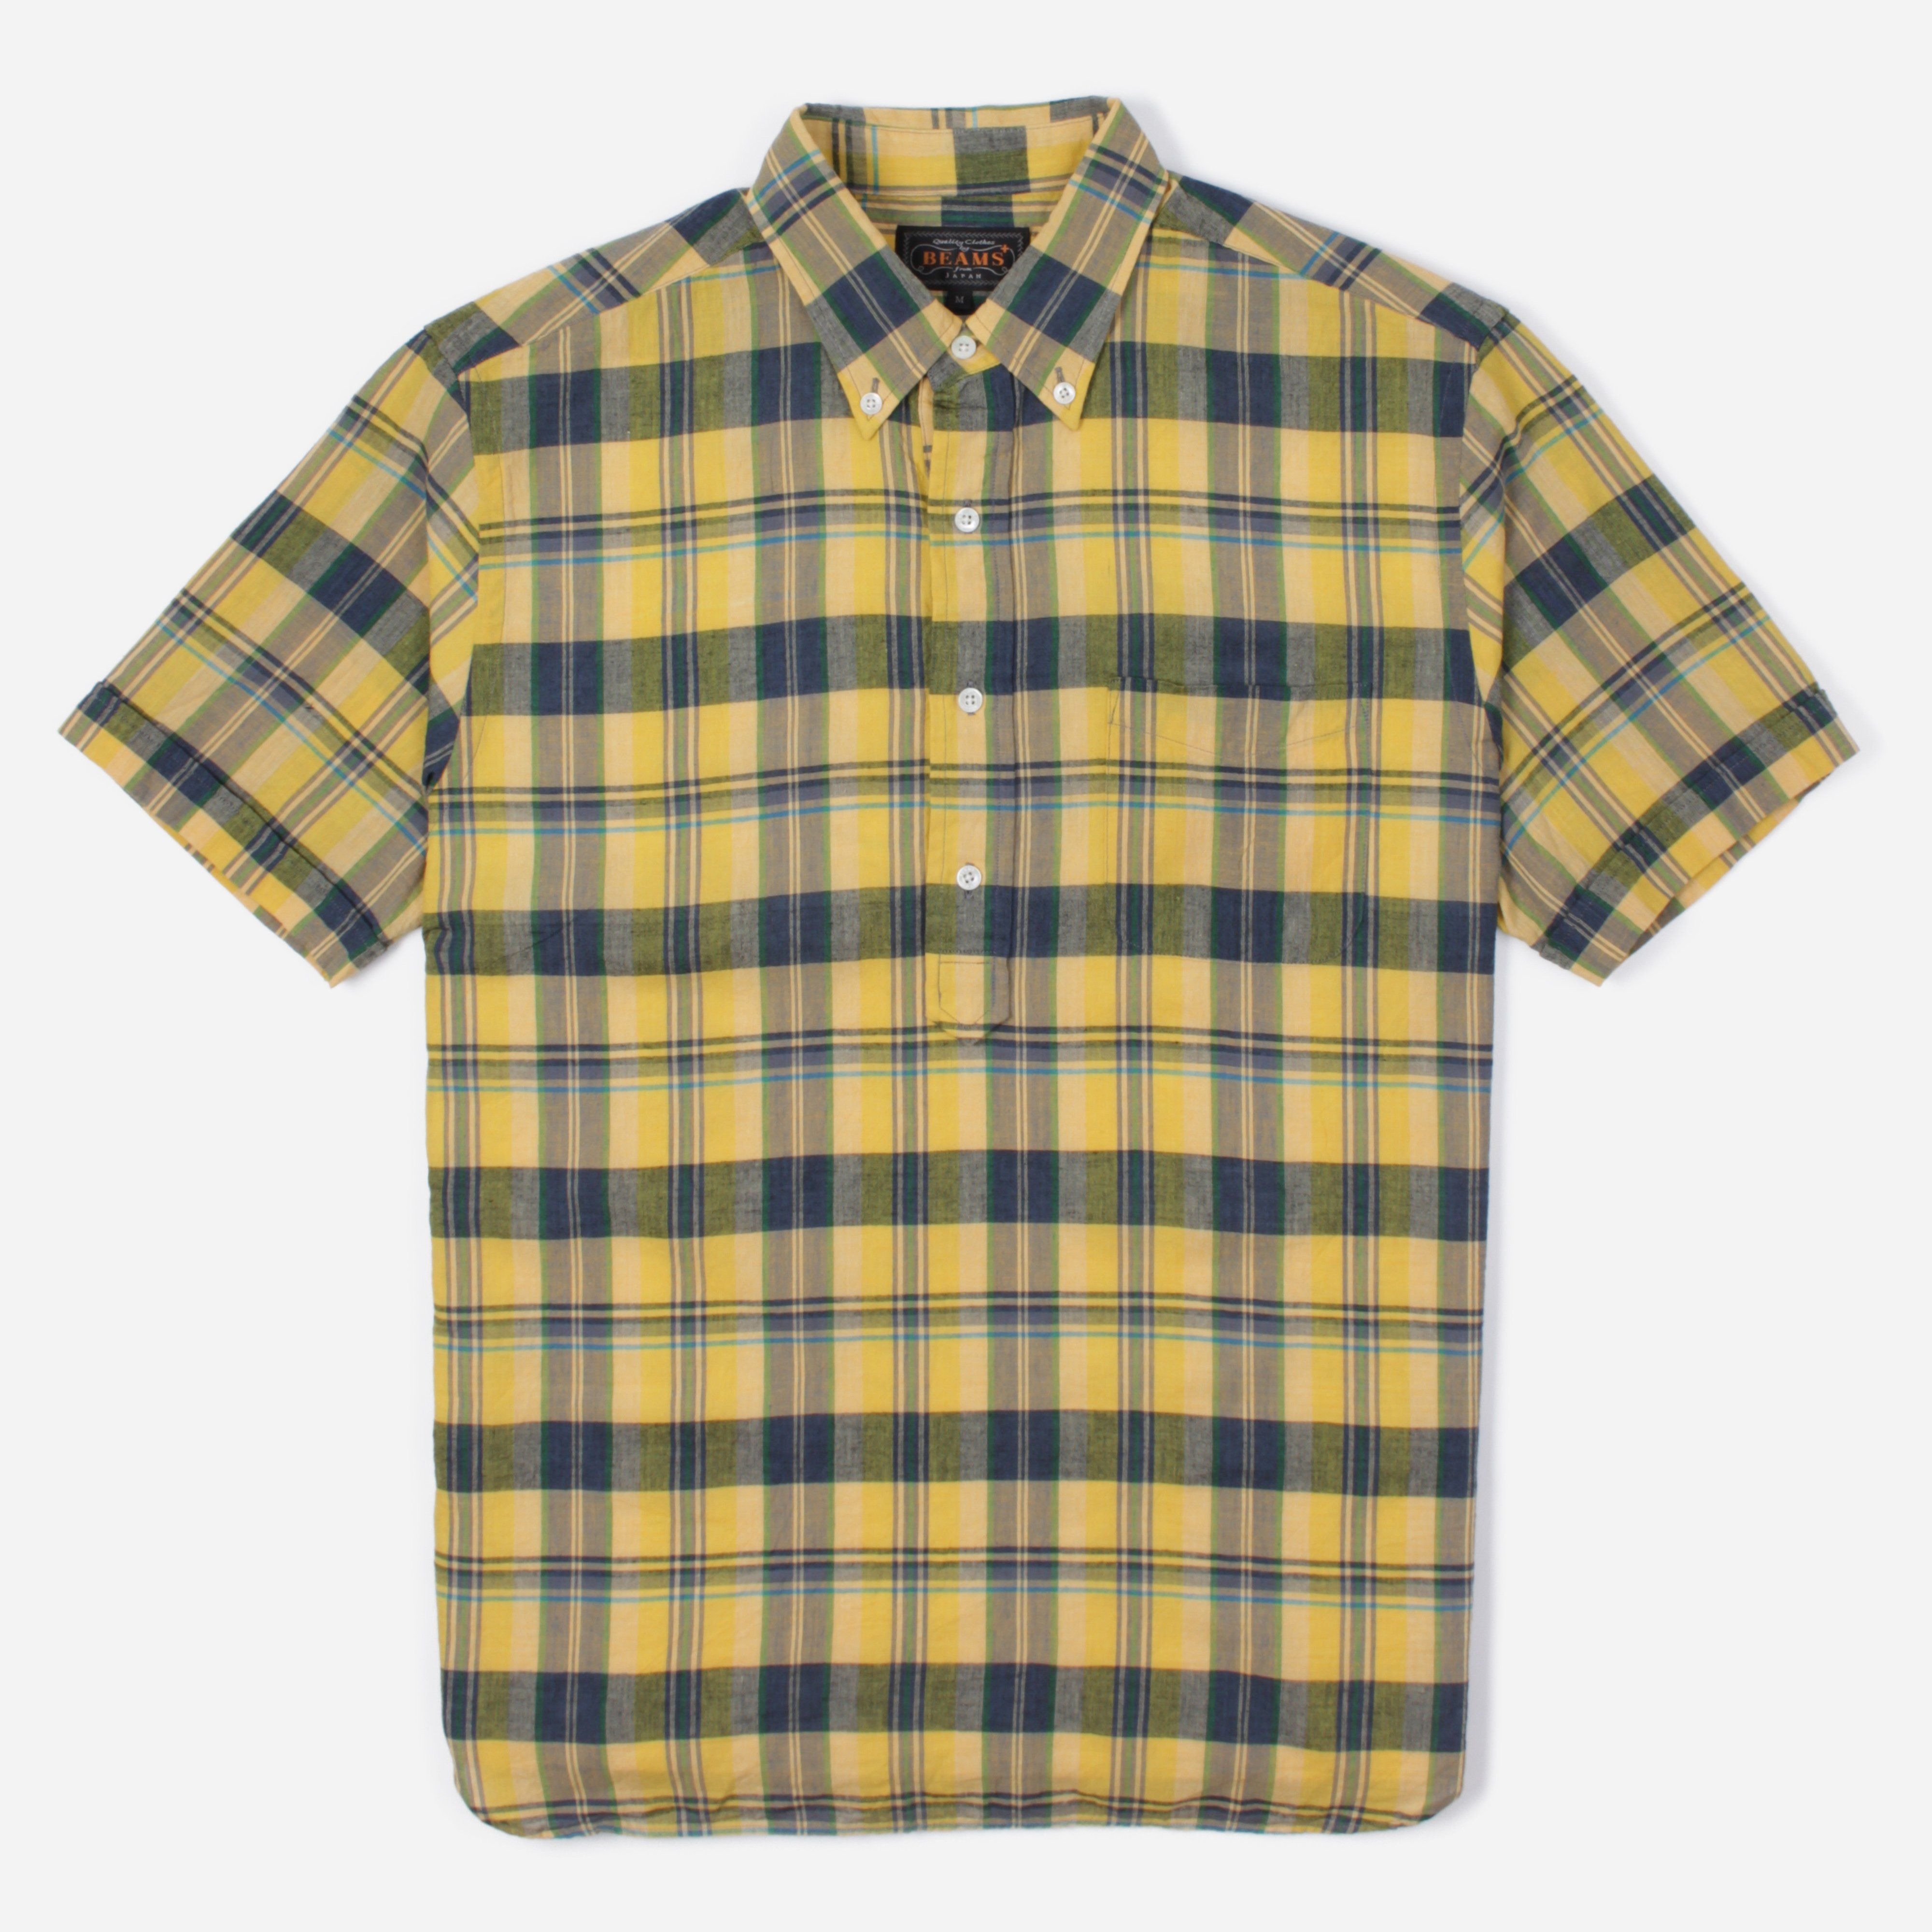 Beams Plus 1101 0877 139 SS BD PULLOVER BD INDIAN MADRAS